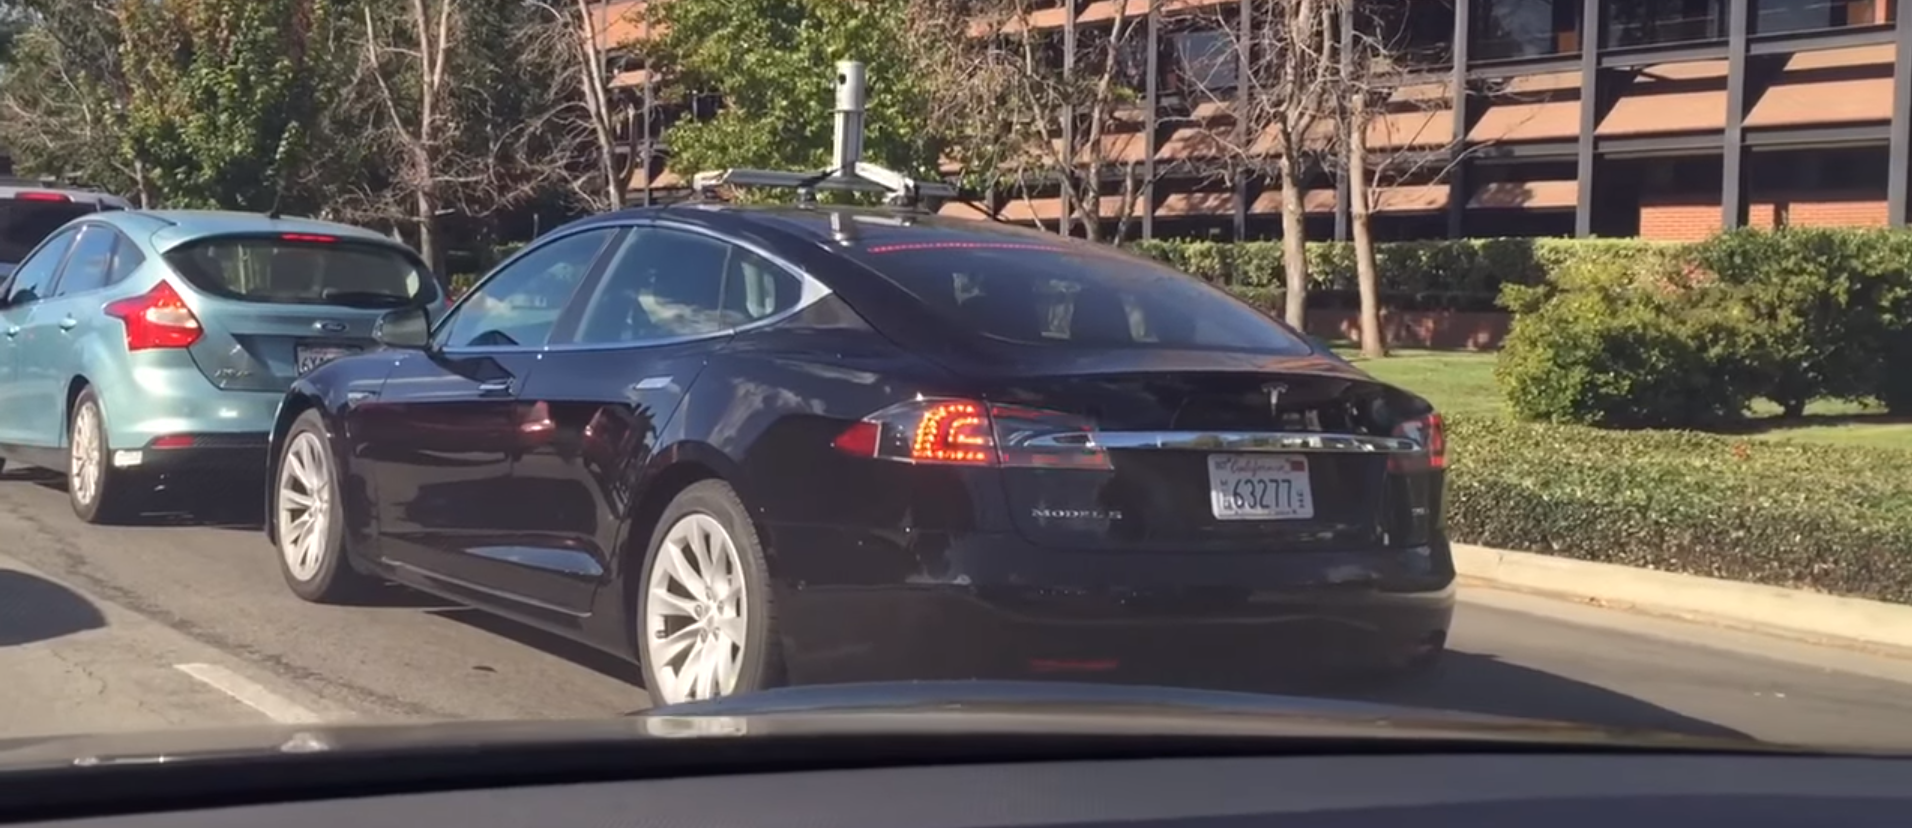 tesla-model-s-prototype-with-lidar-sensor